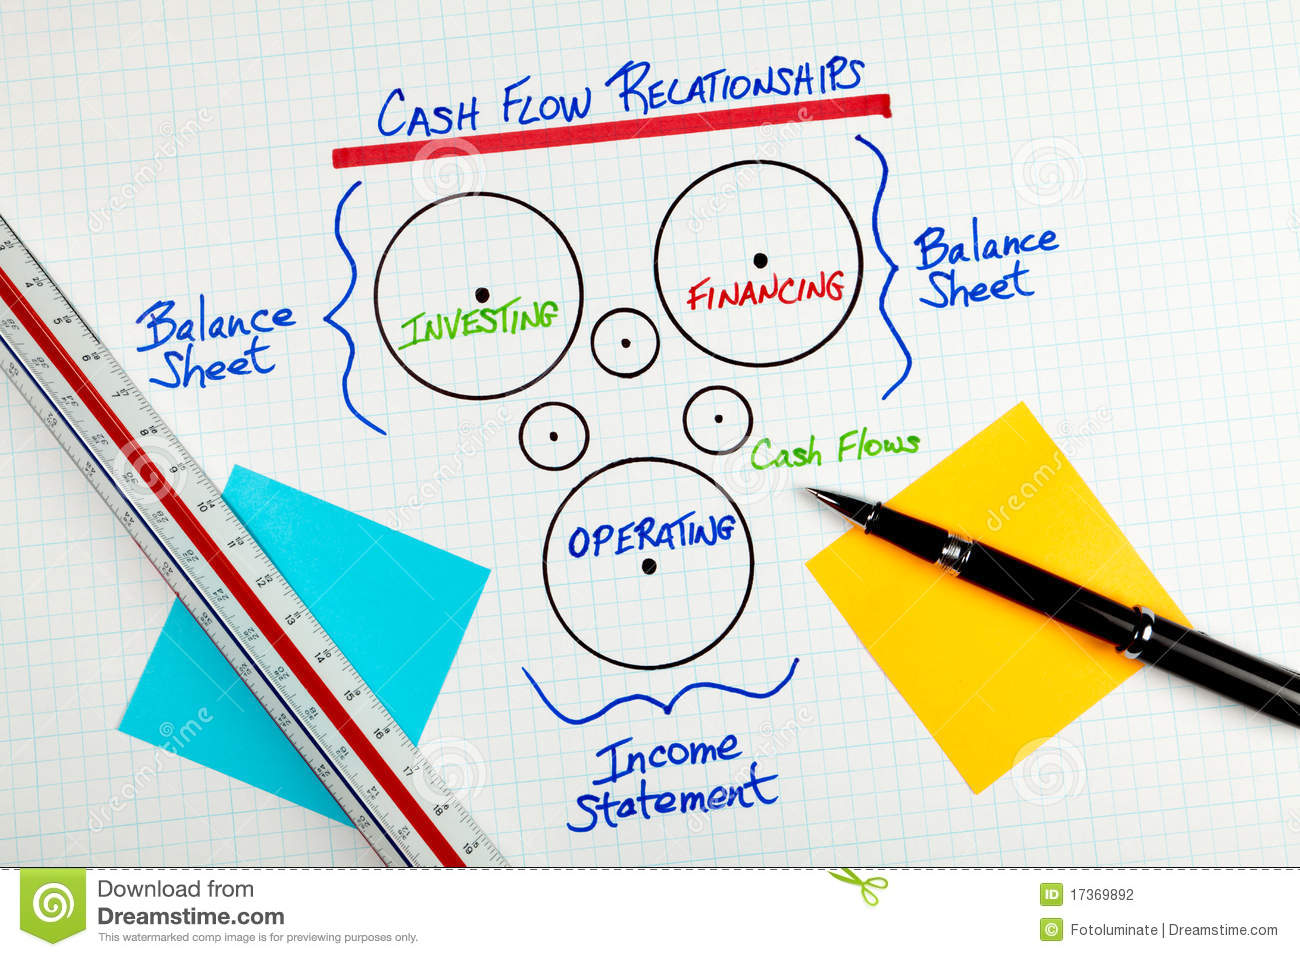 Business Cash Flow Accounting Relationship Diagram Stock